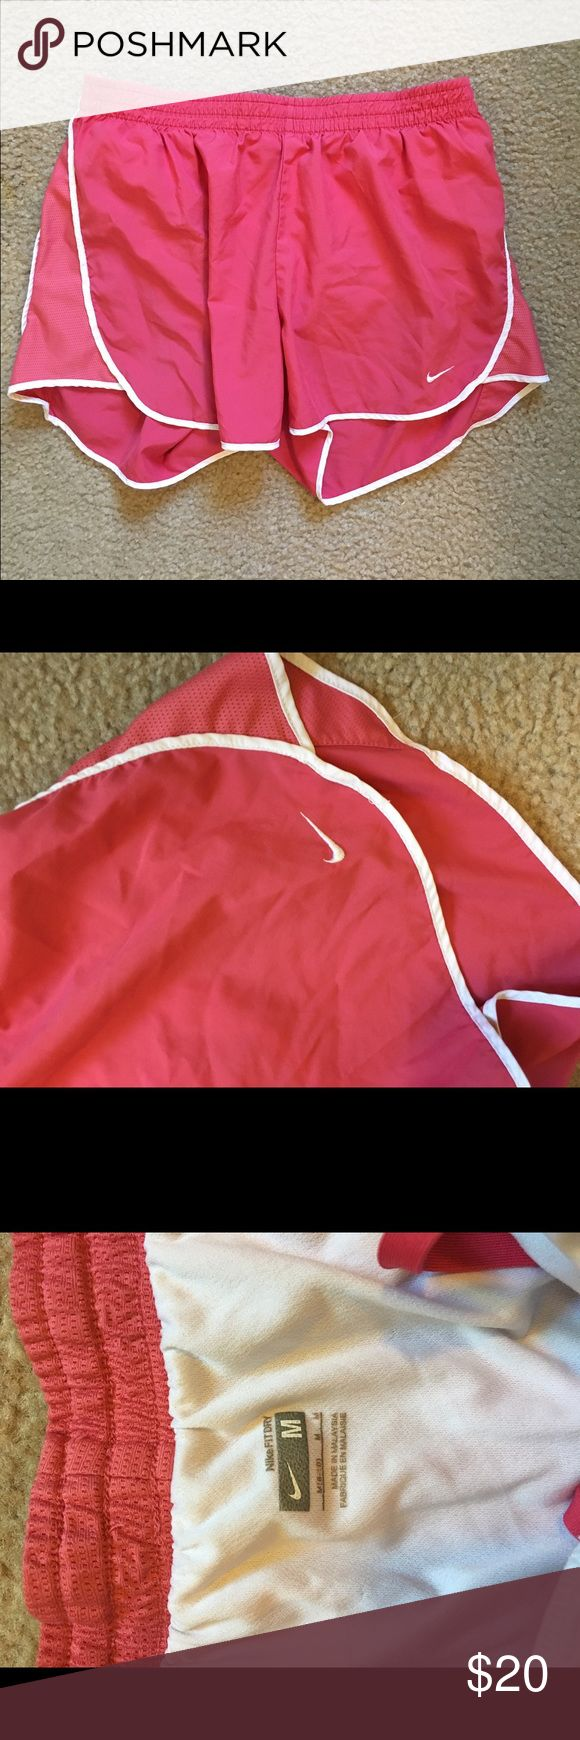 Coral Nike Shorts Size medium coral and white Nike shorts. No flaws! Open to offers; bundles discounted! Nike Shorts